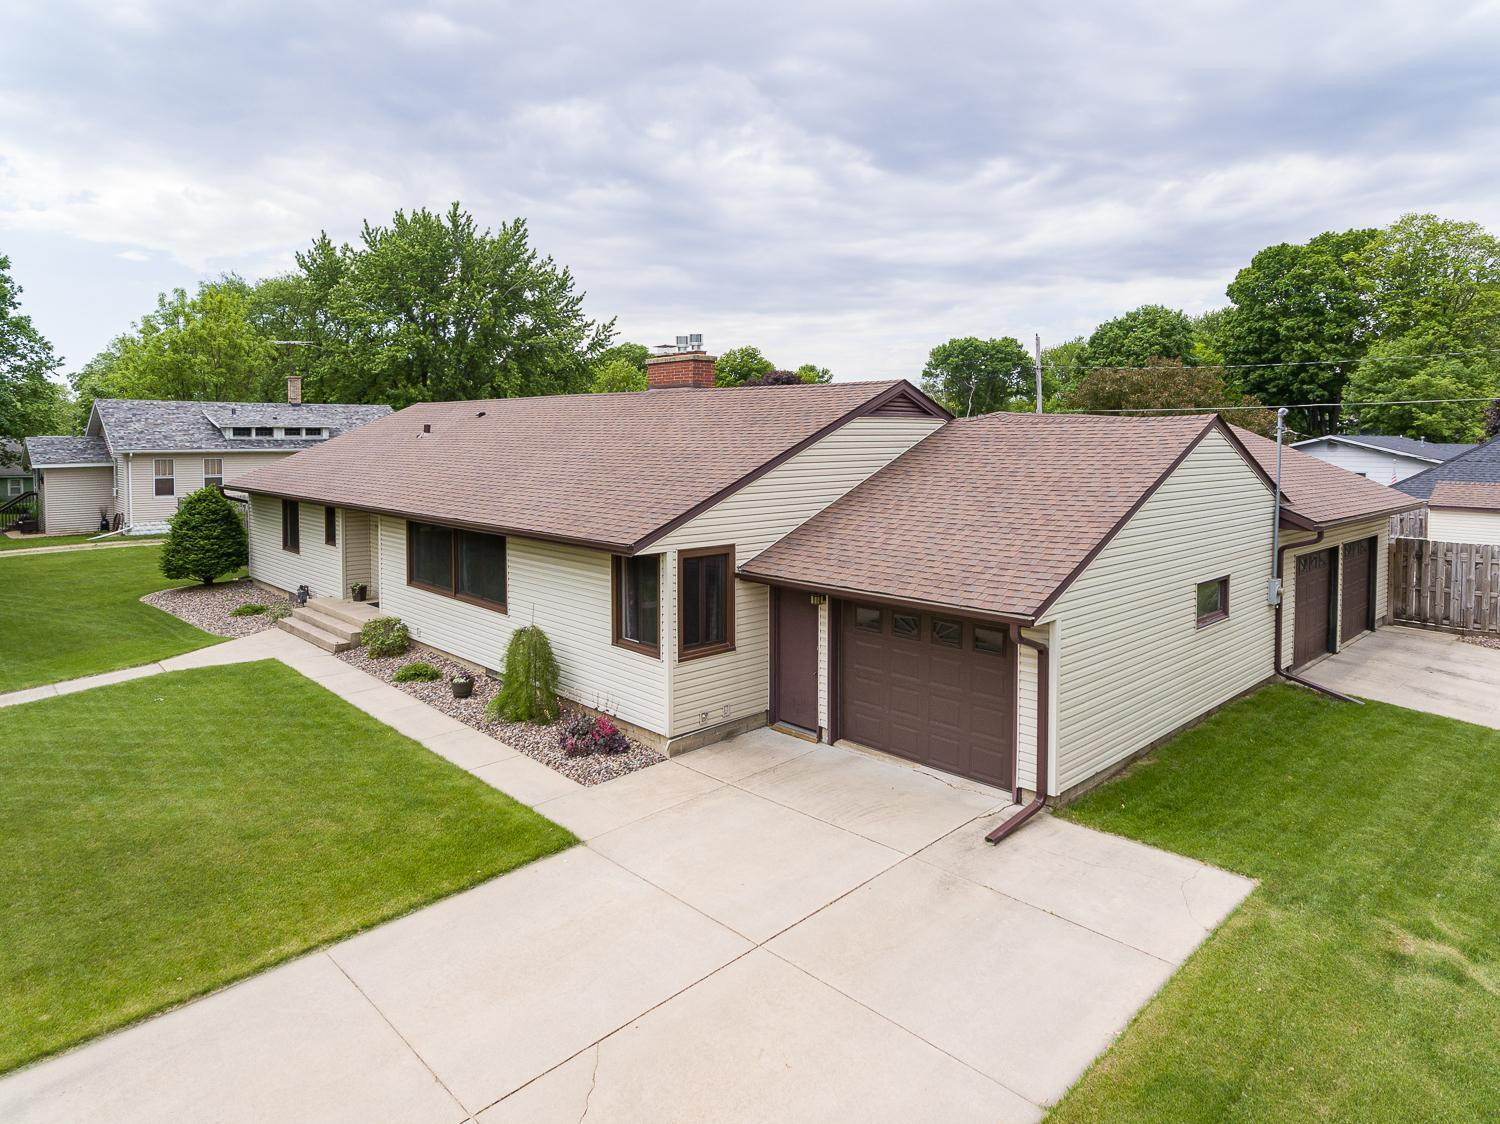 507 1st Avenue NW, Kasson, MN 55944